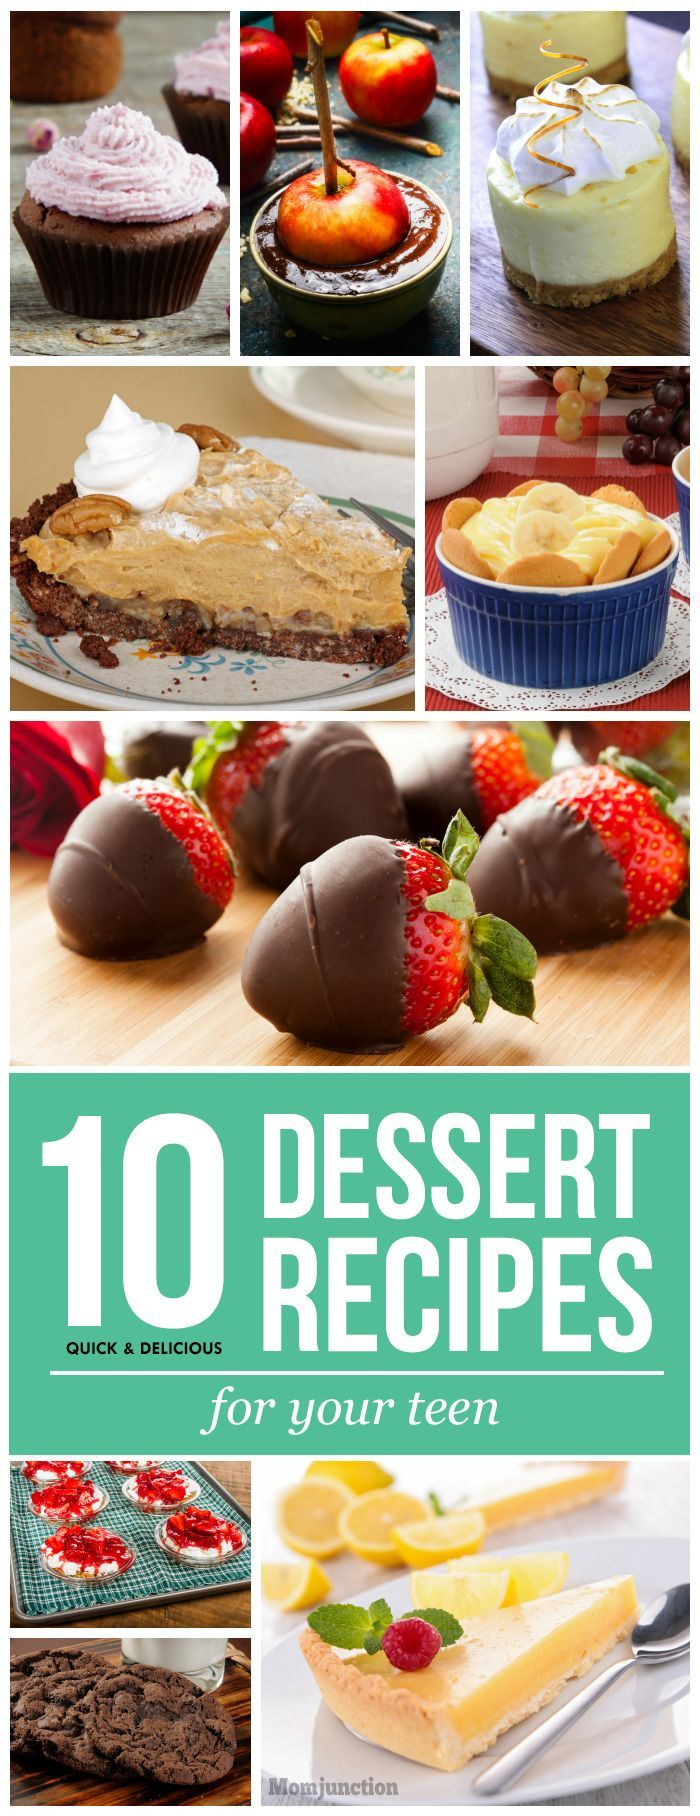 396 best teen topics images on pinterest creative for Quick easy healthy dessert recipes